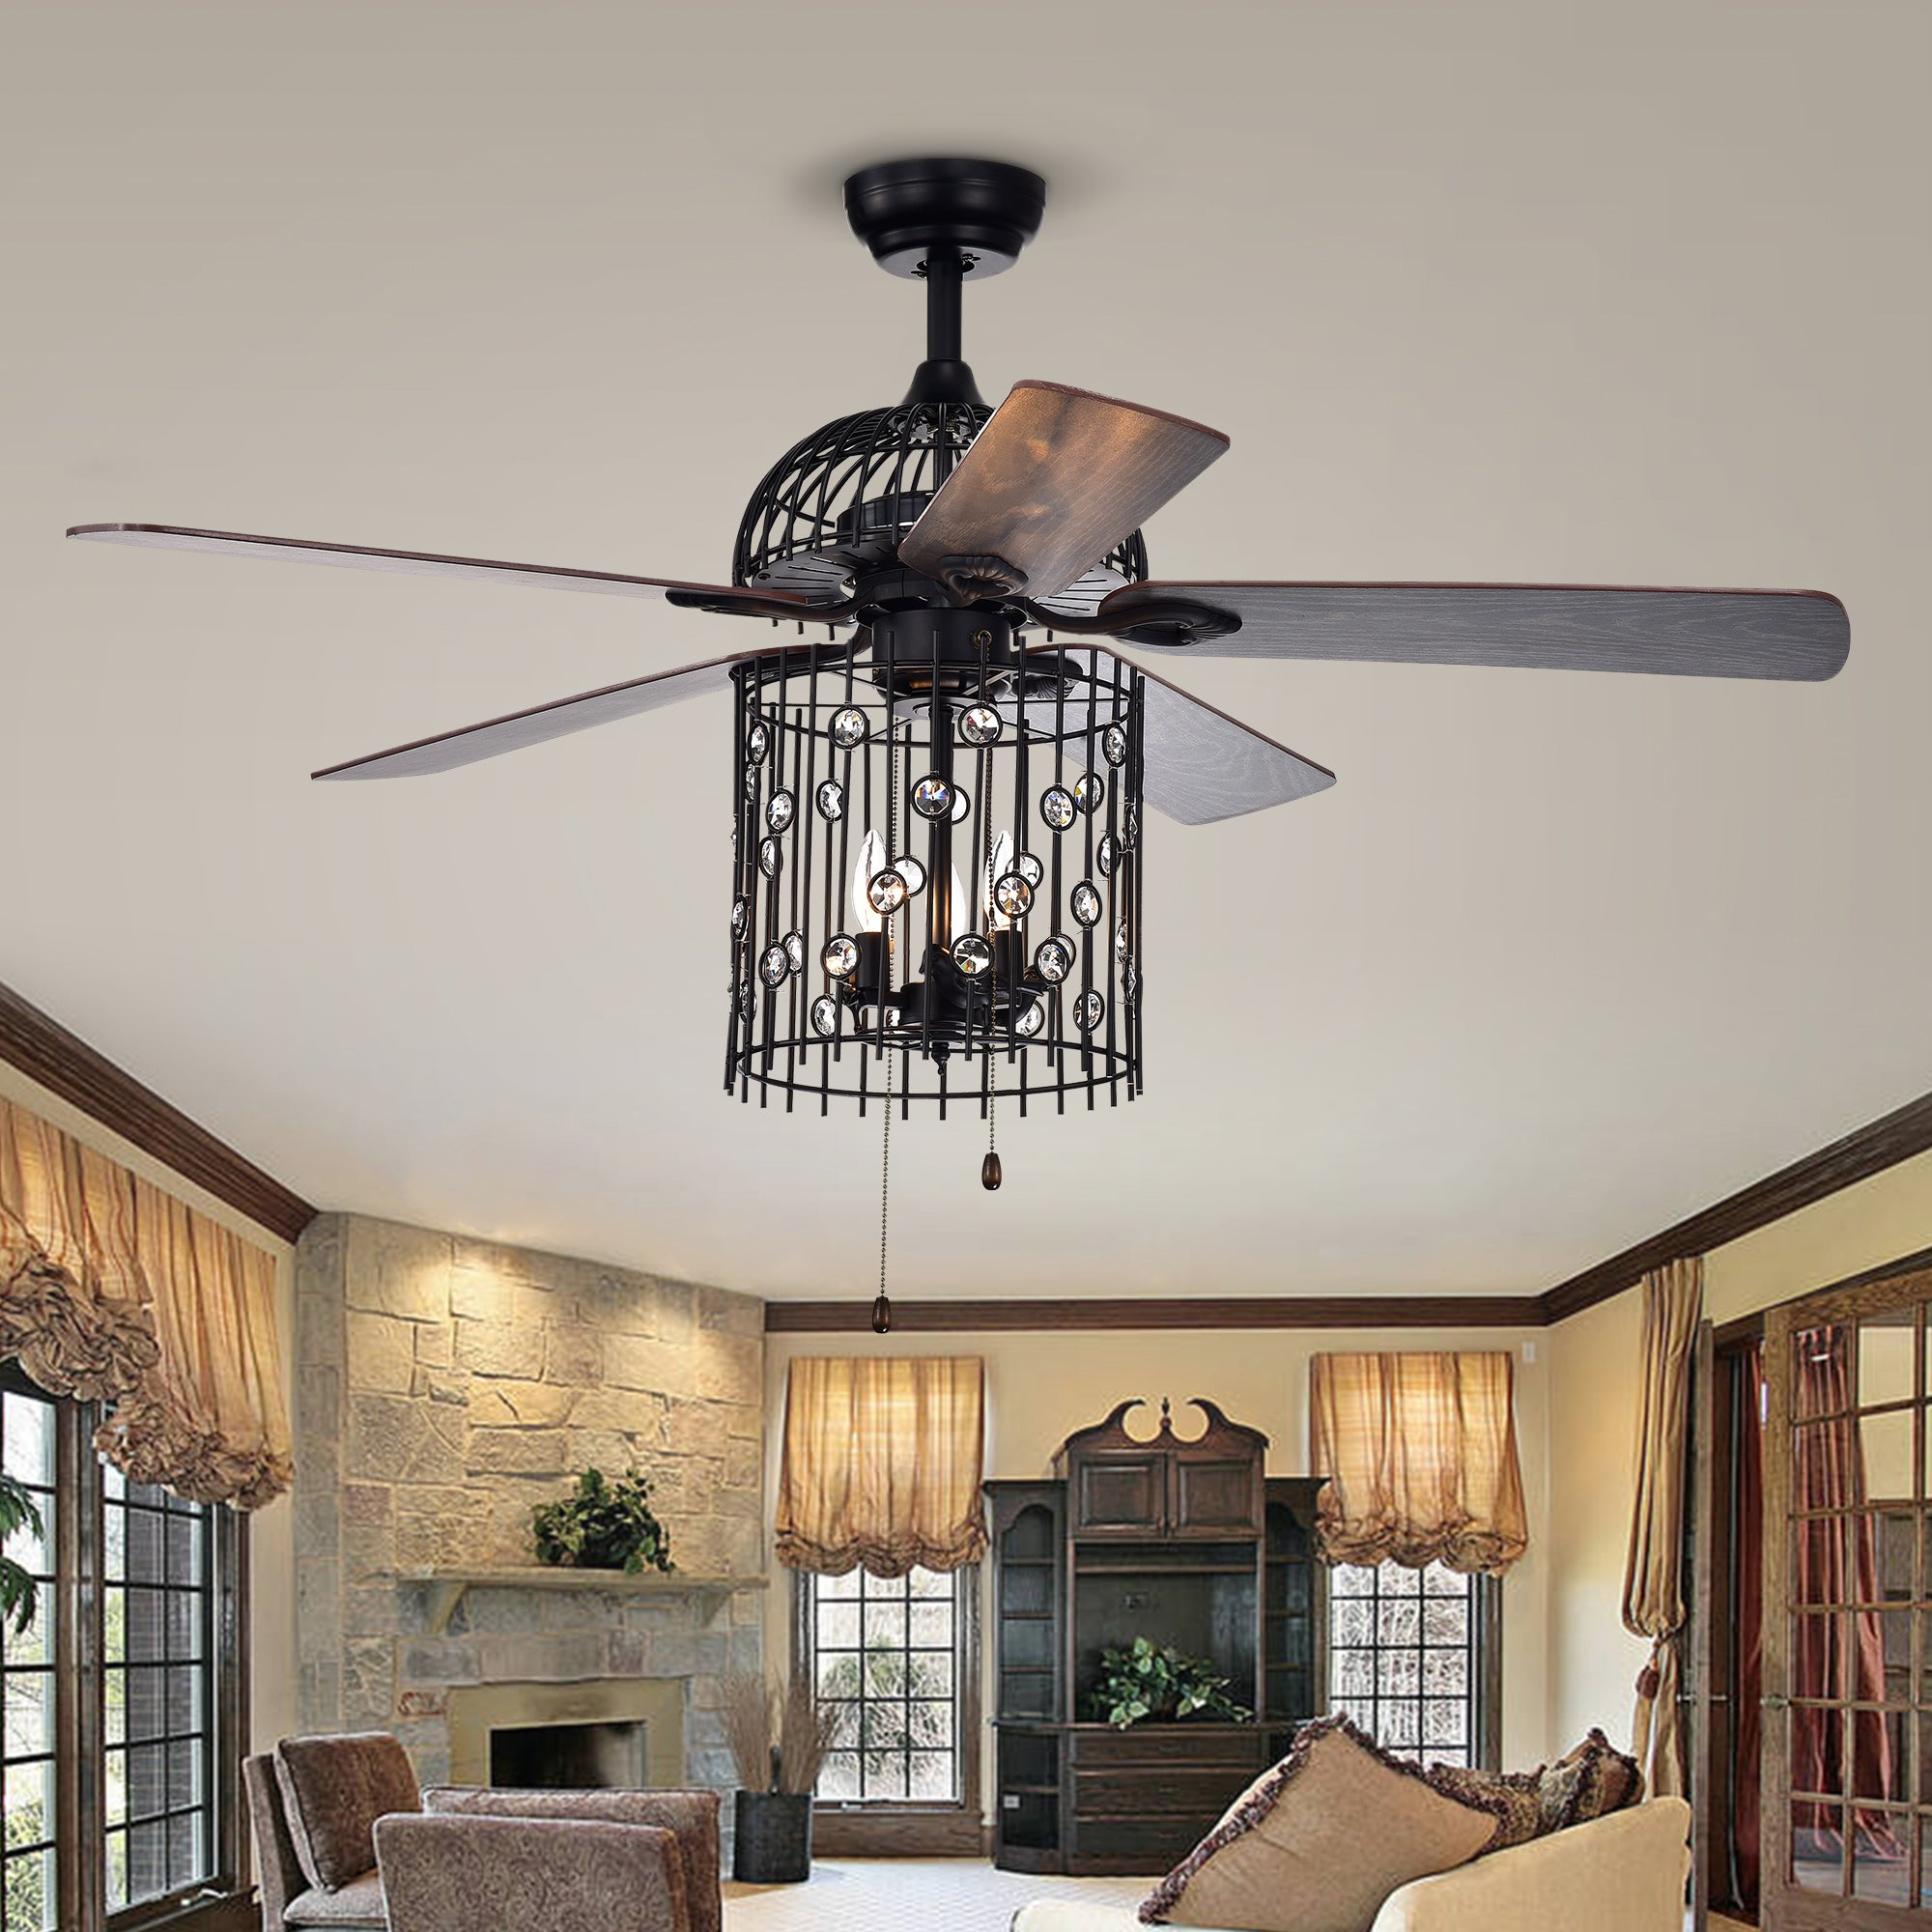 fan ceiling fans subaris copper in antique imaemayxxhvktafj india price original list blade orient paddle